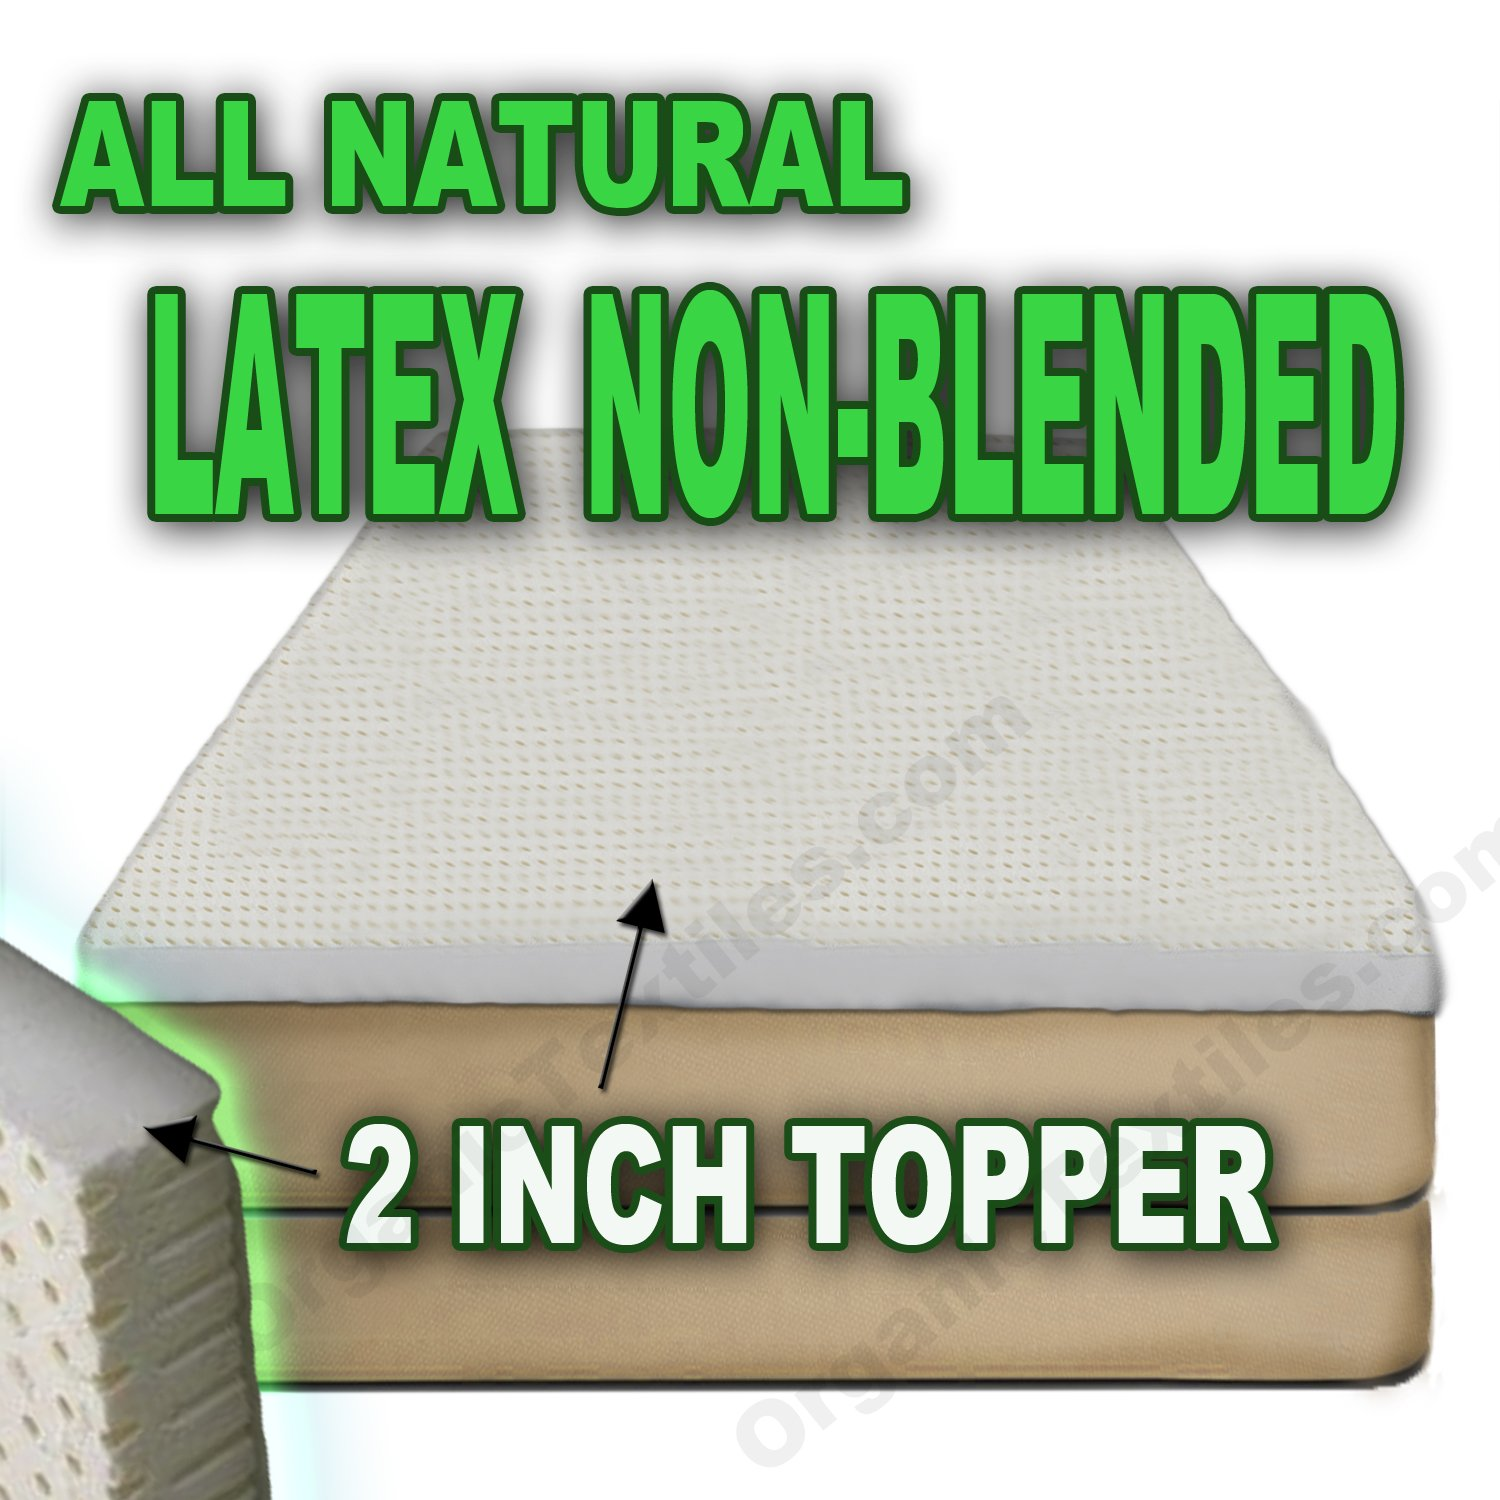 Best sale all natural latex non blended mattress topper for Best online shopping sites usa